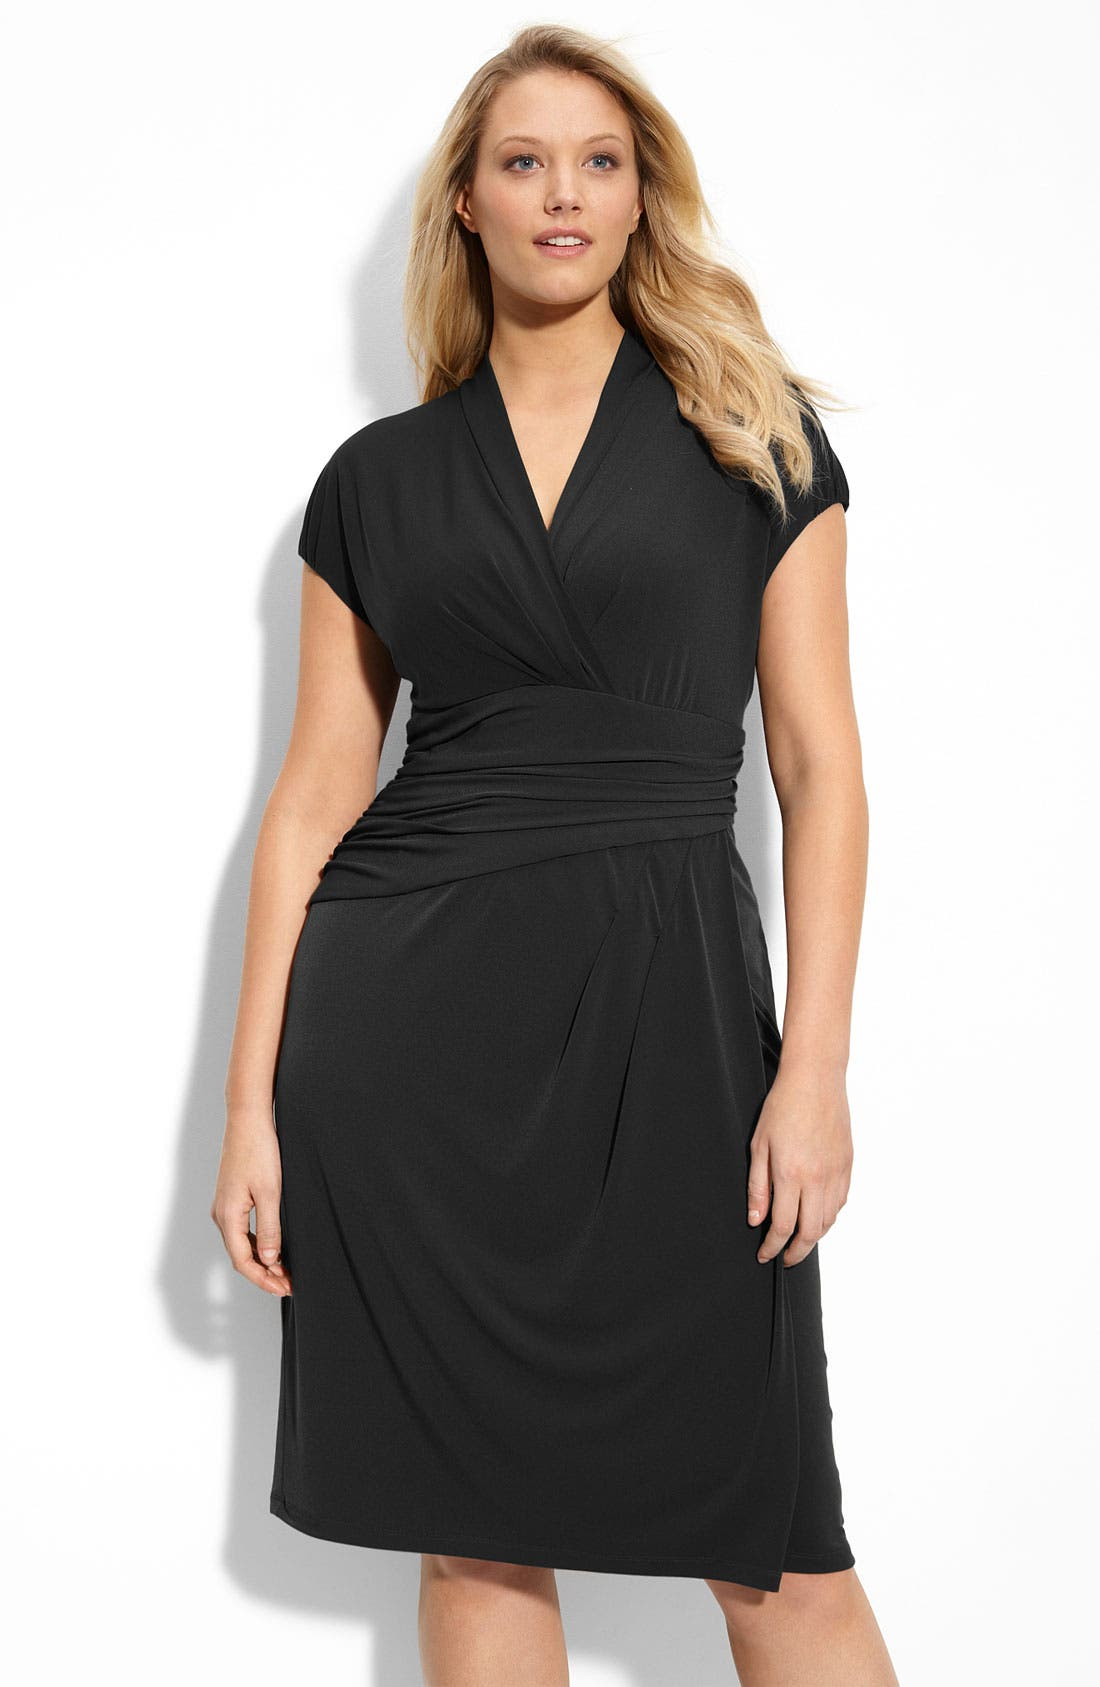 Main Image - Suzi Chin for Maggy Boutique Jersey Knit Dress (Plus Size)